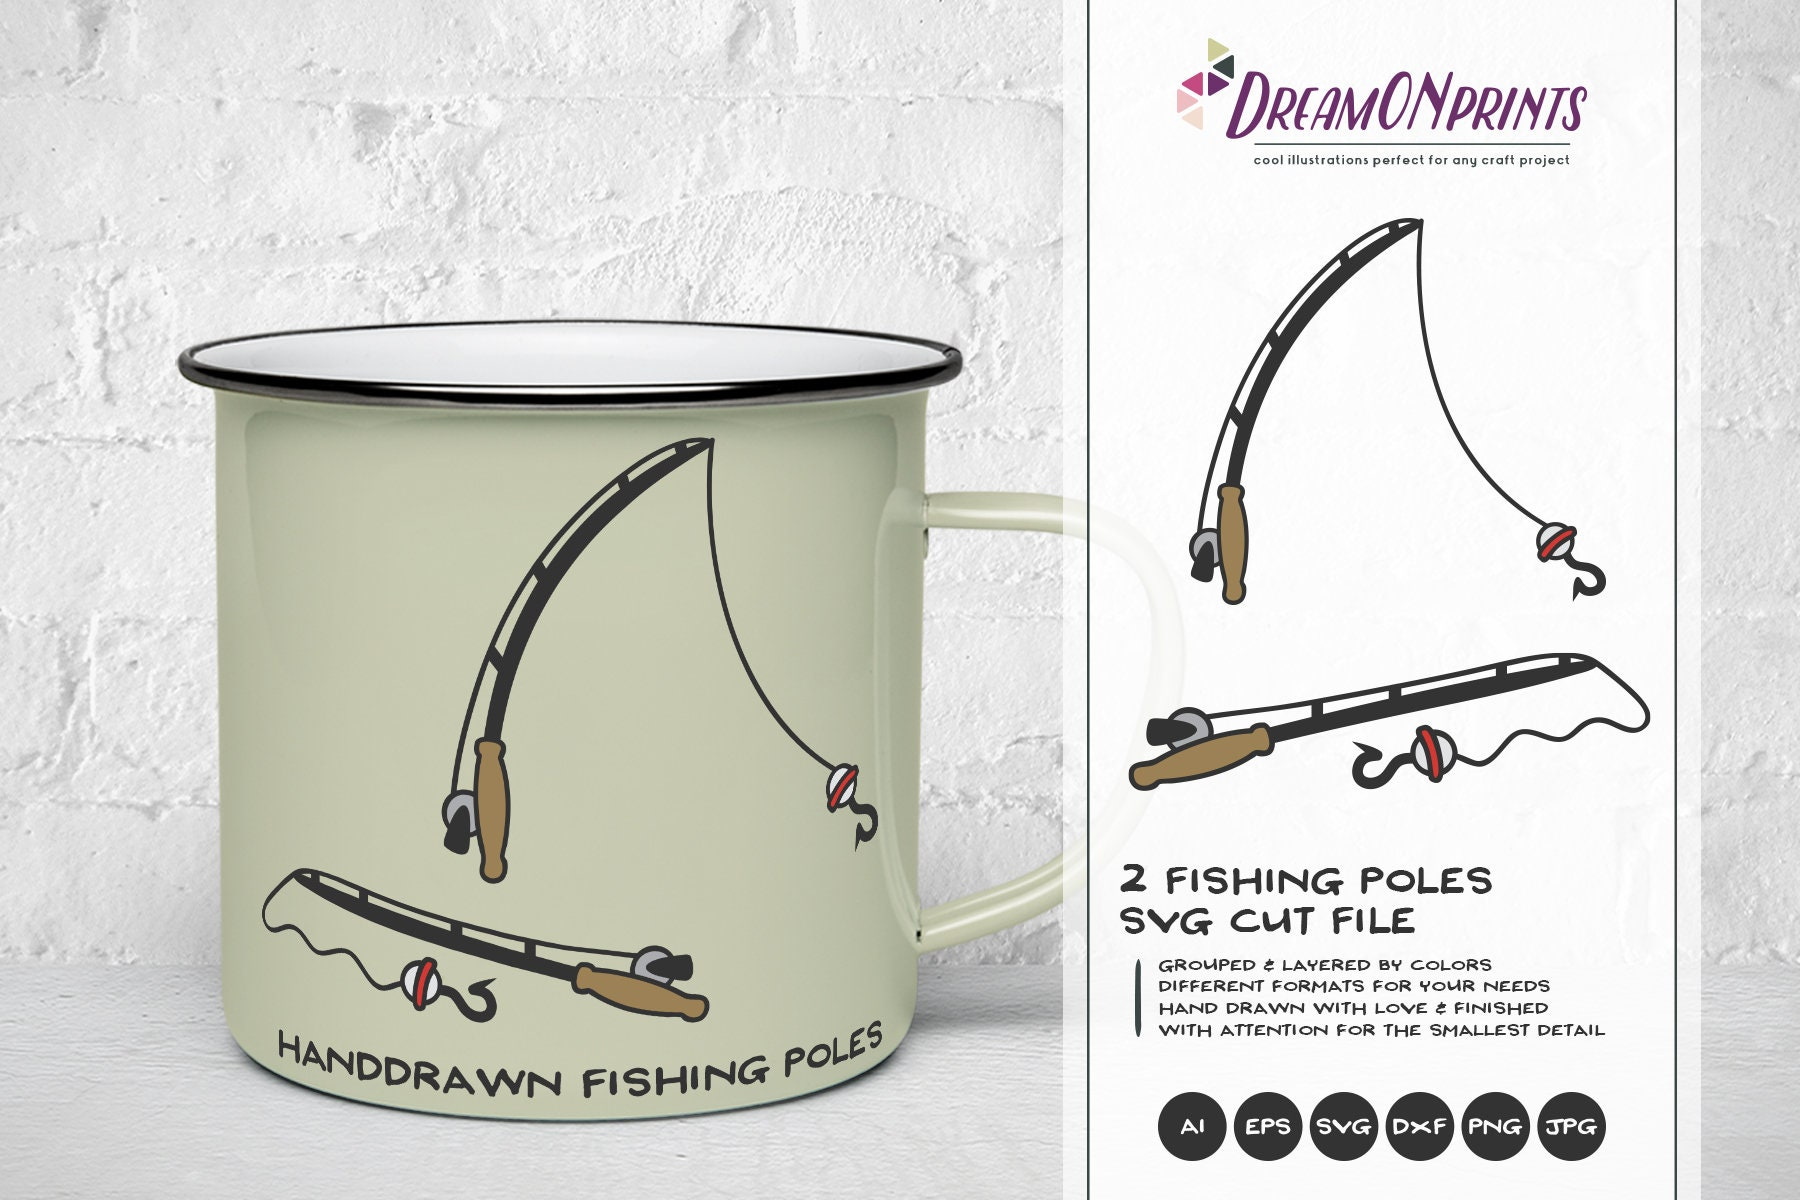 Fishing Pole Svg Fishing Svg Fishing Pole Cut Files Lake Svg Hunting Svg Camping Svg For Cricut Silhouette And More Dop220